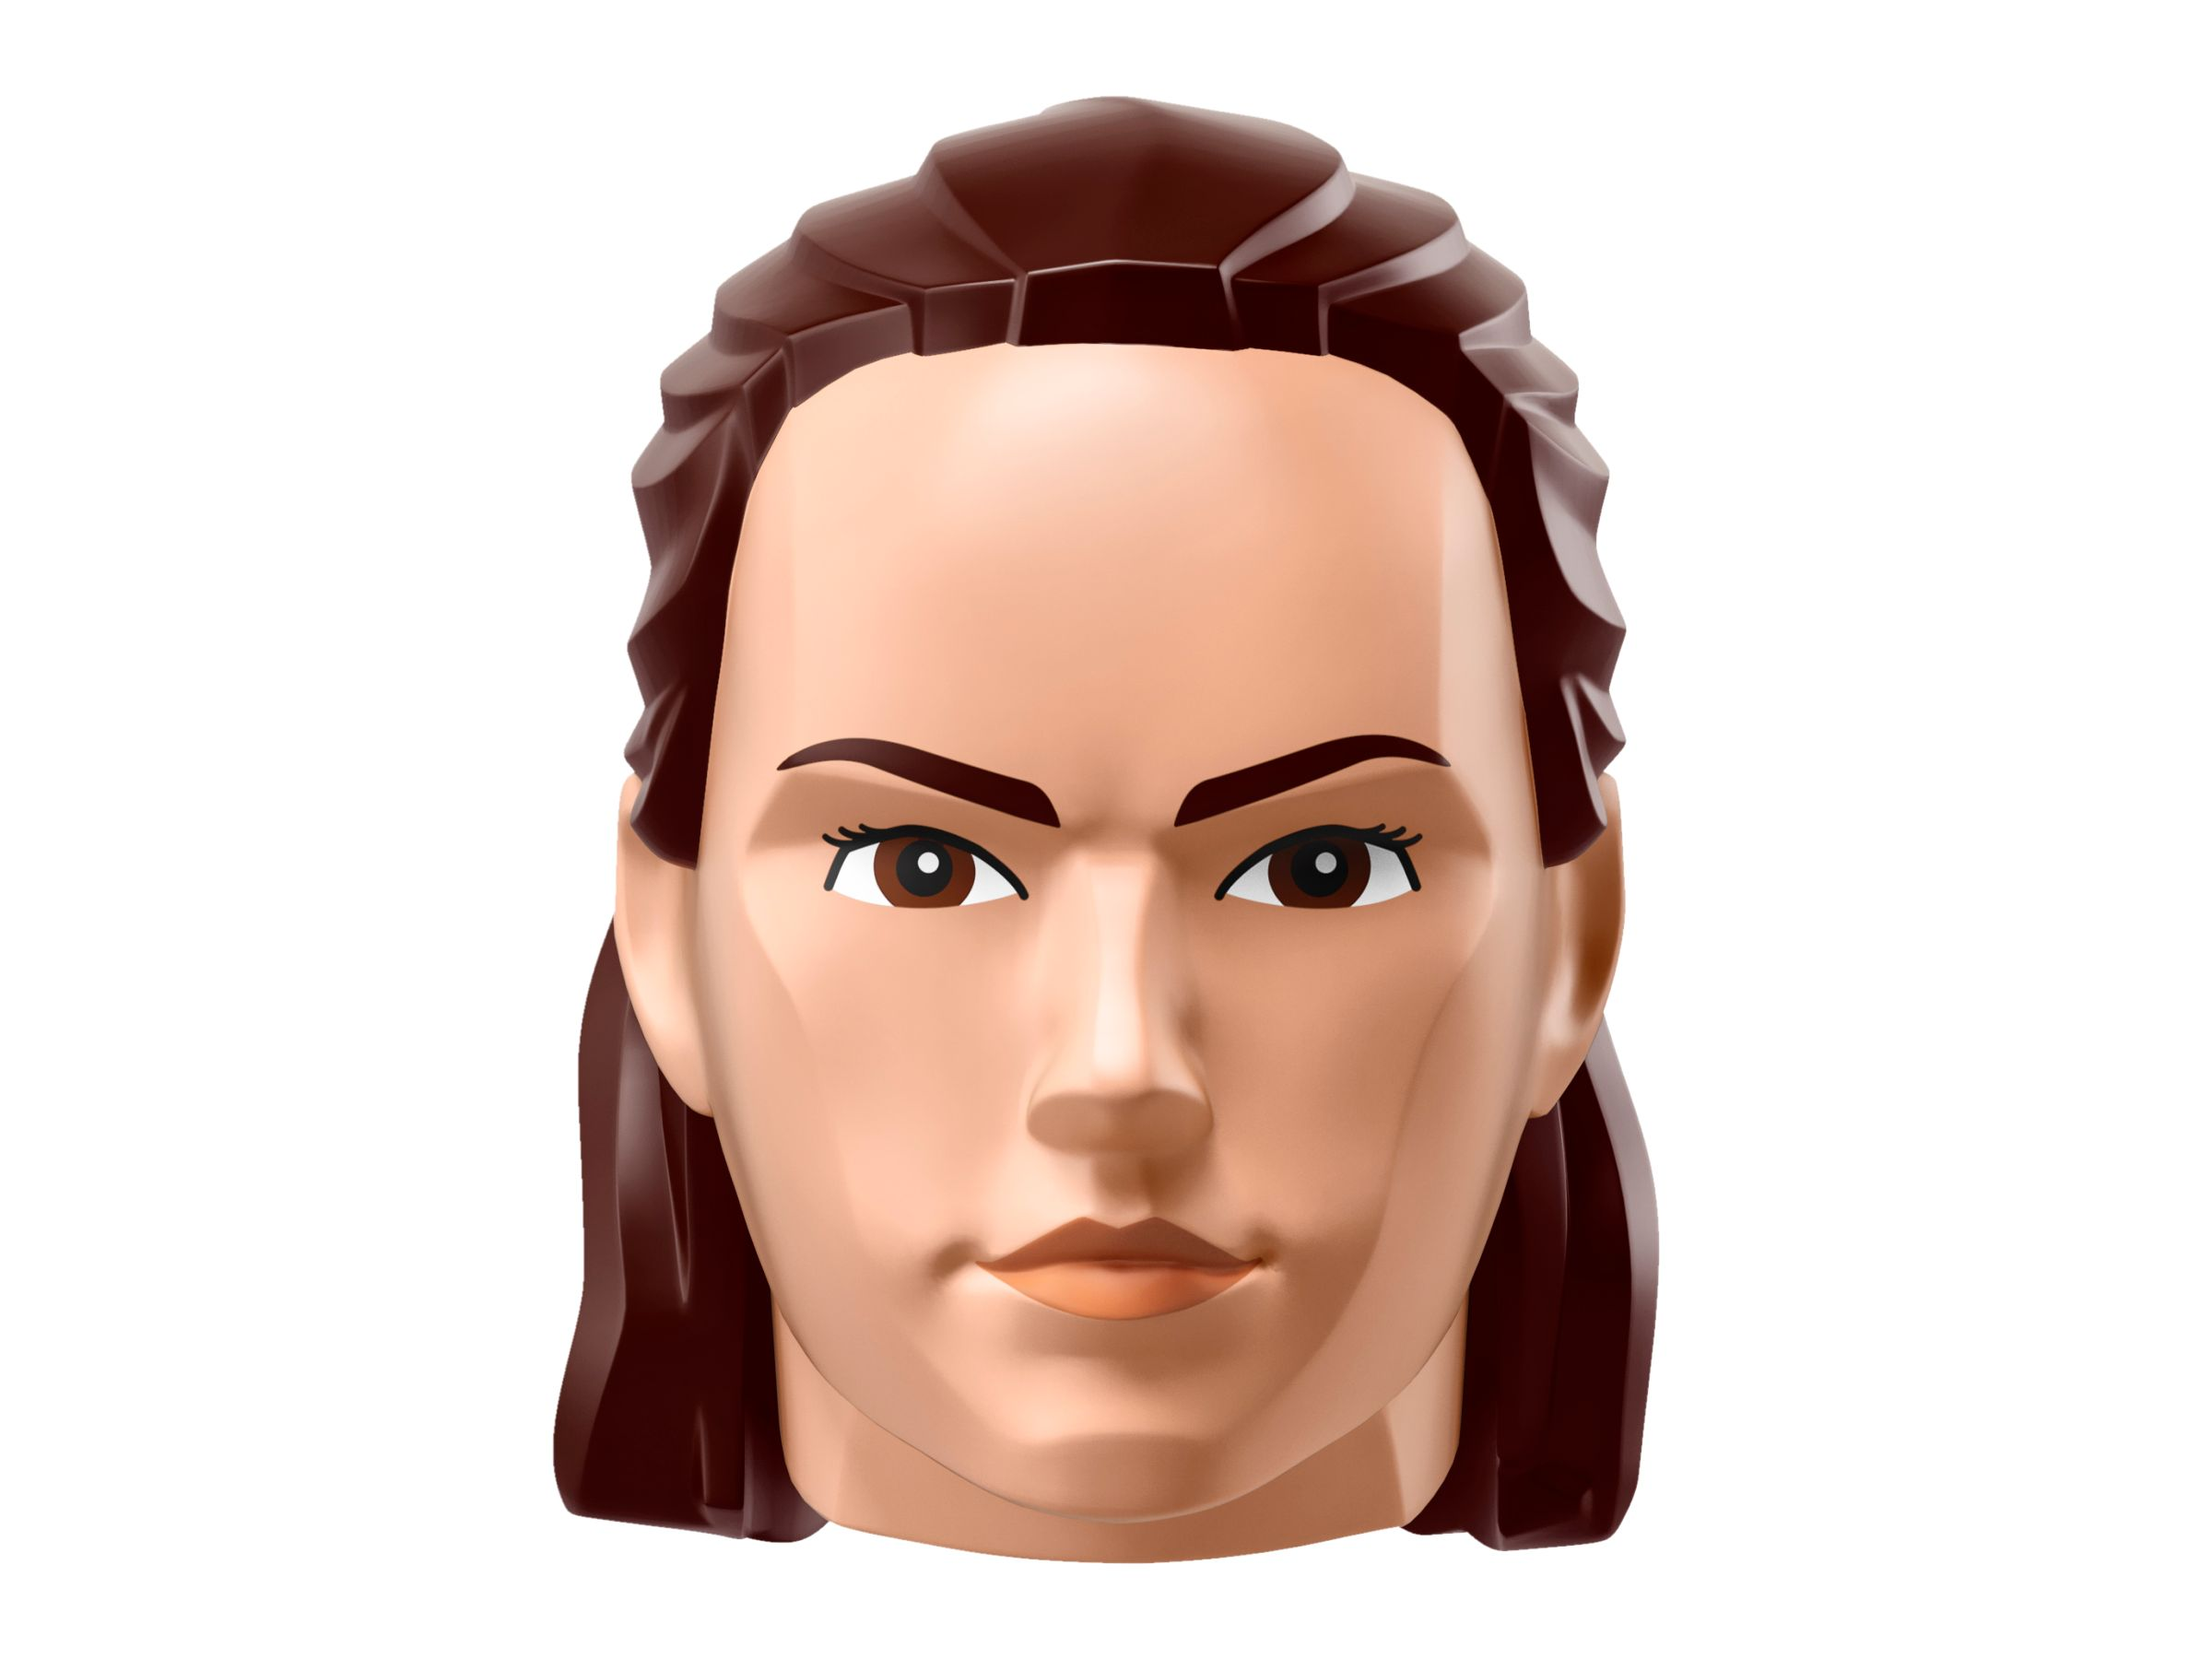 LEGO Star Wars Buildable Figures 75528 Rey LEGO_75528_alt5.jpg